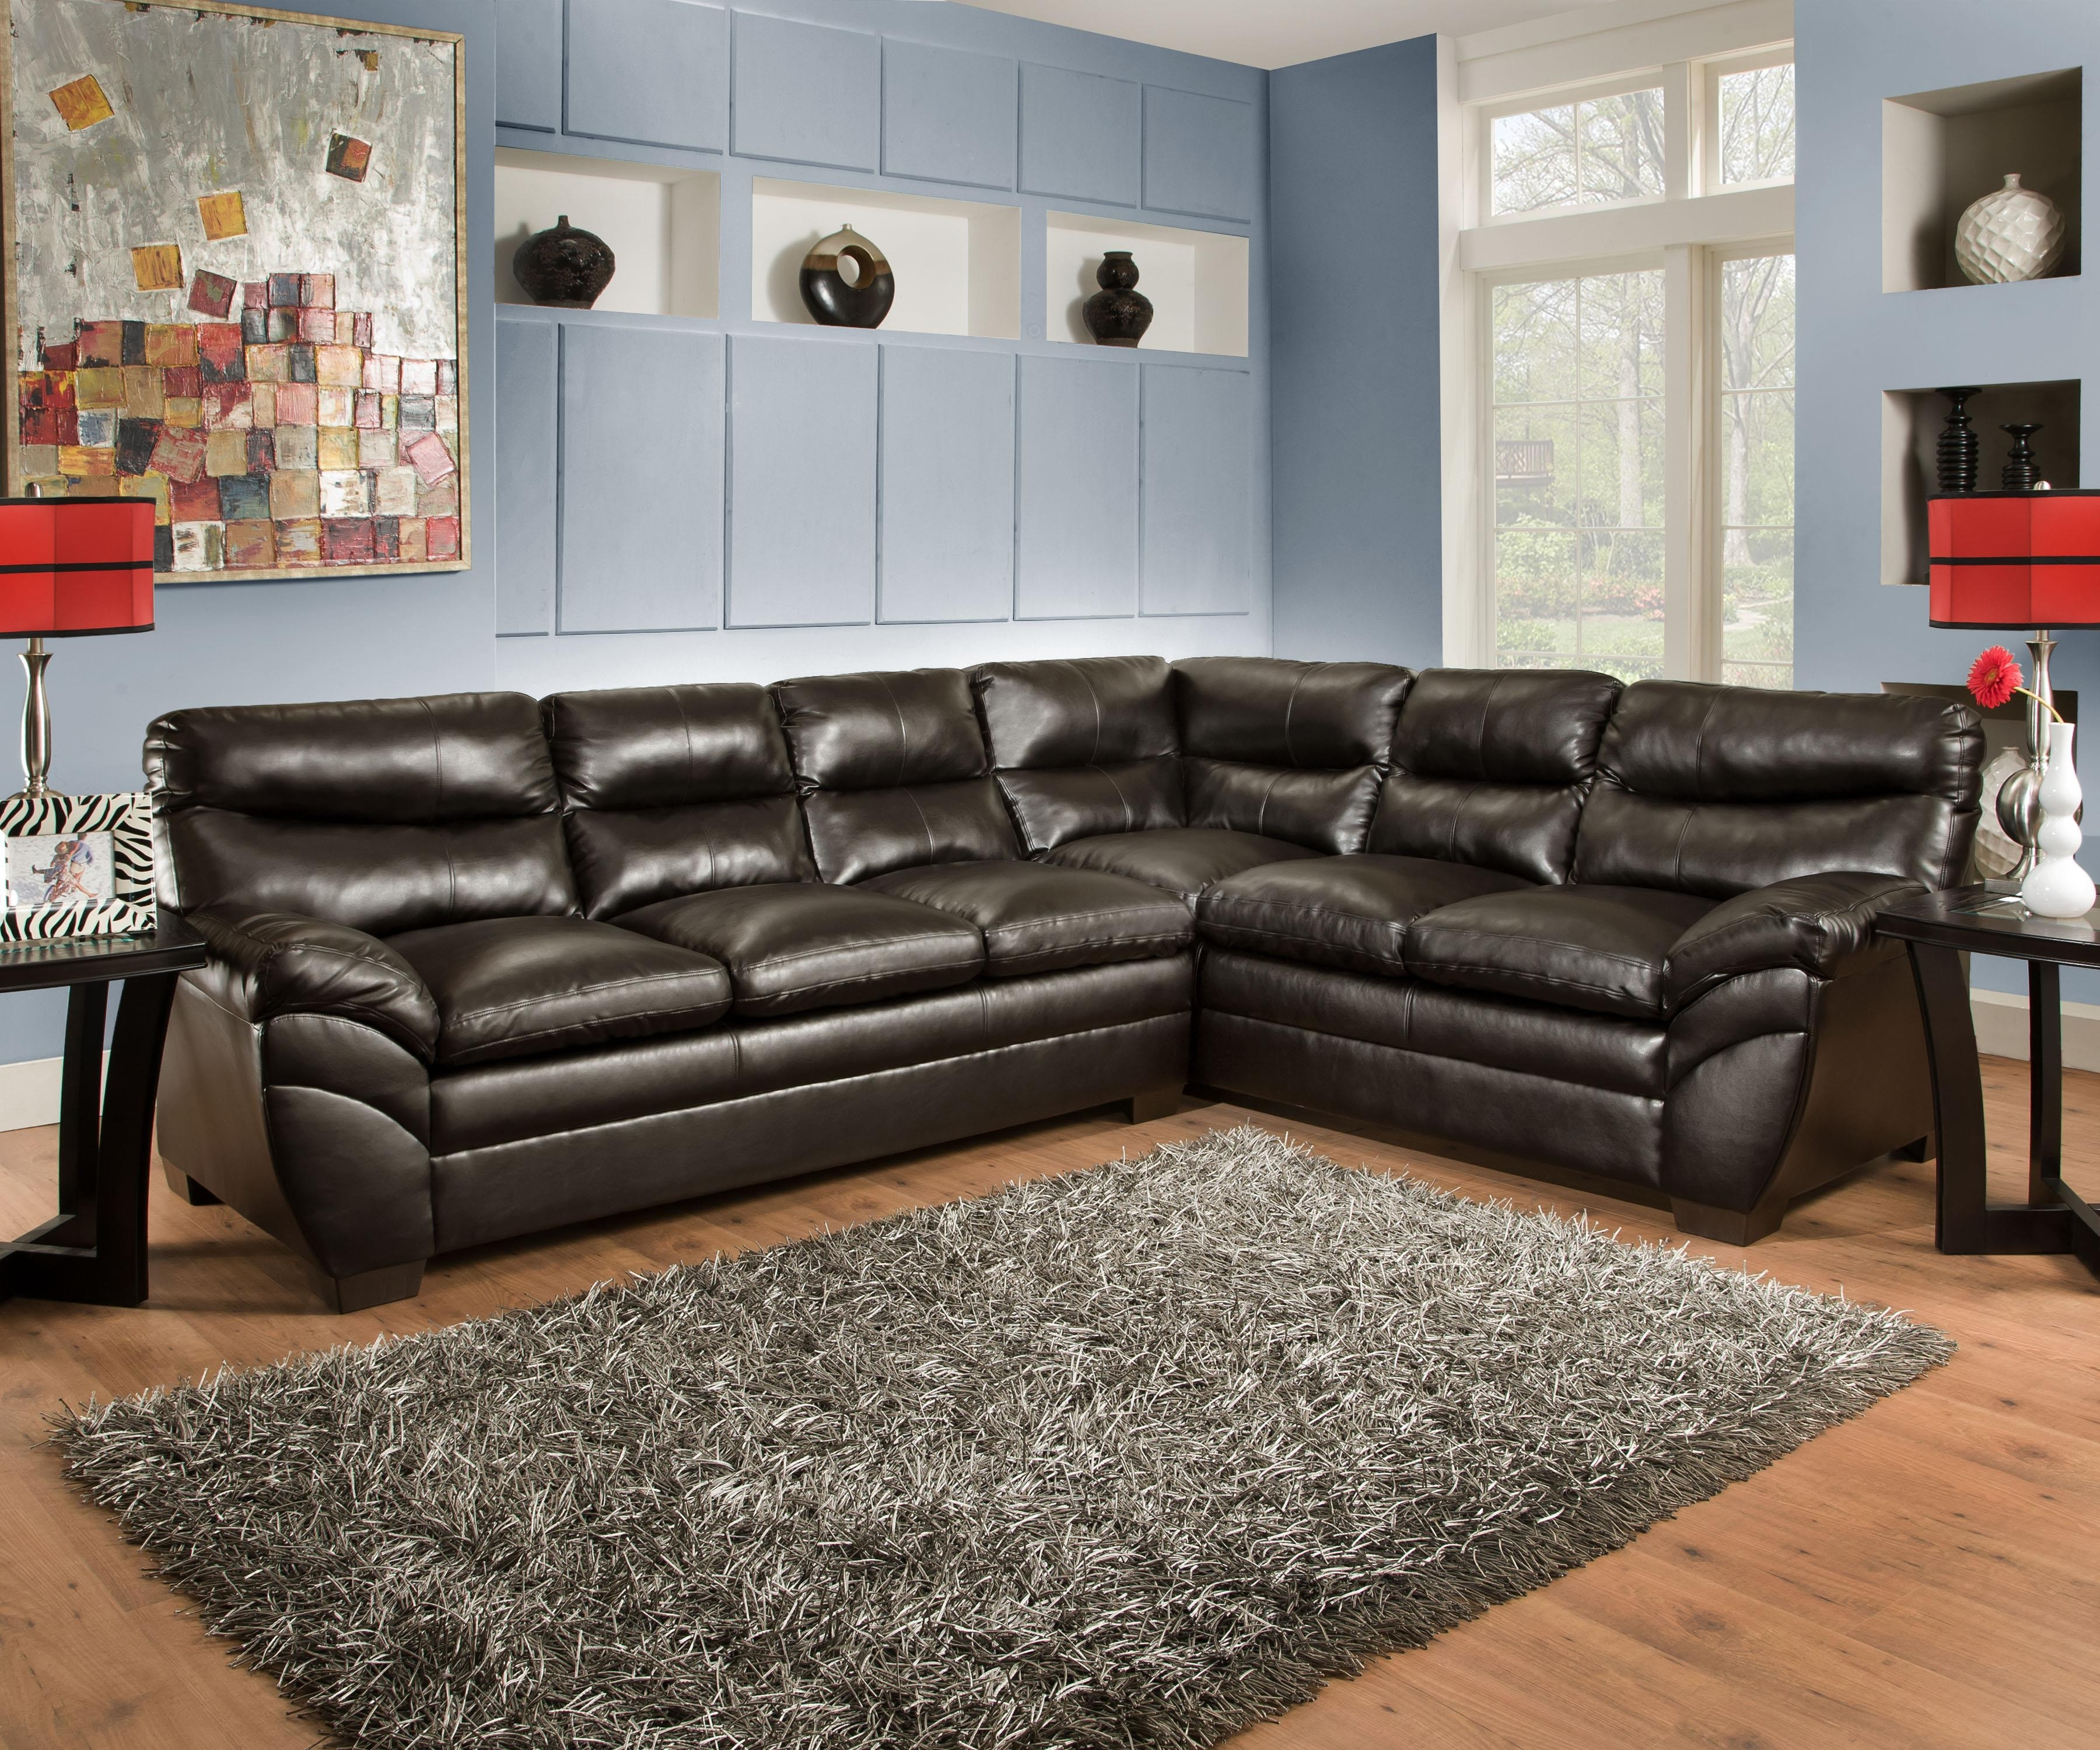 Phoenix Arizona Sectional Sofas Throughout Famous Best Modern Phoenix Arizona Craigslist Cars And Tru # (View 13 of 20)